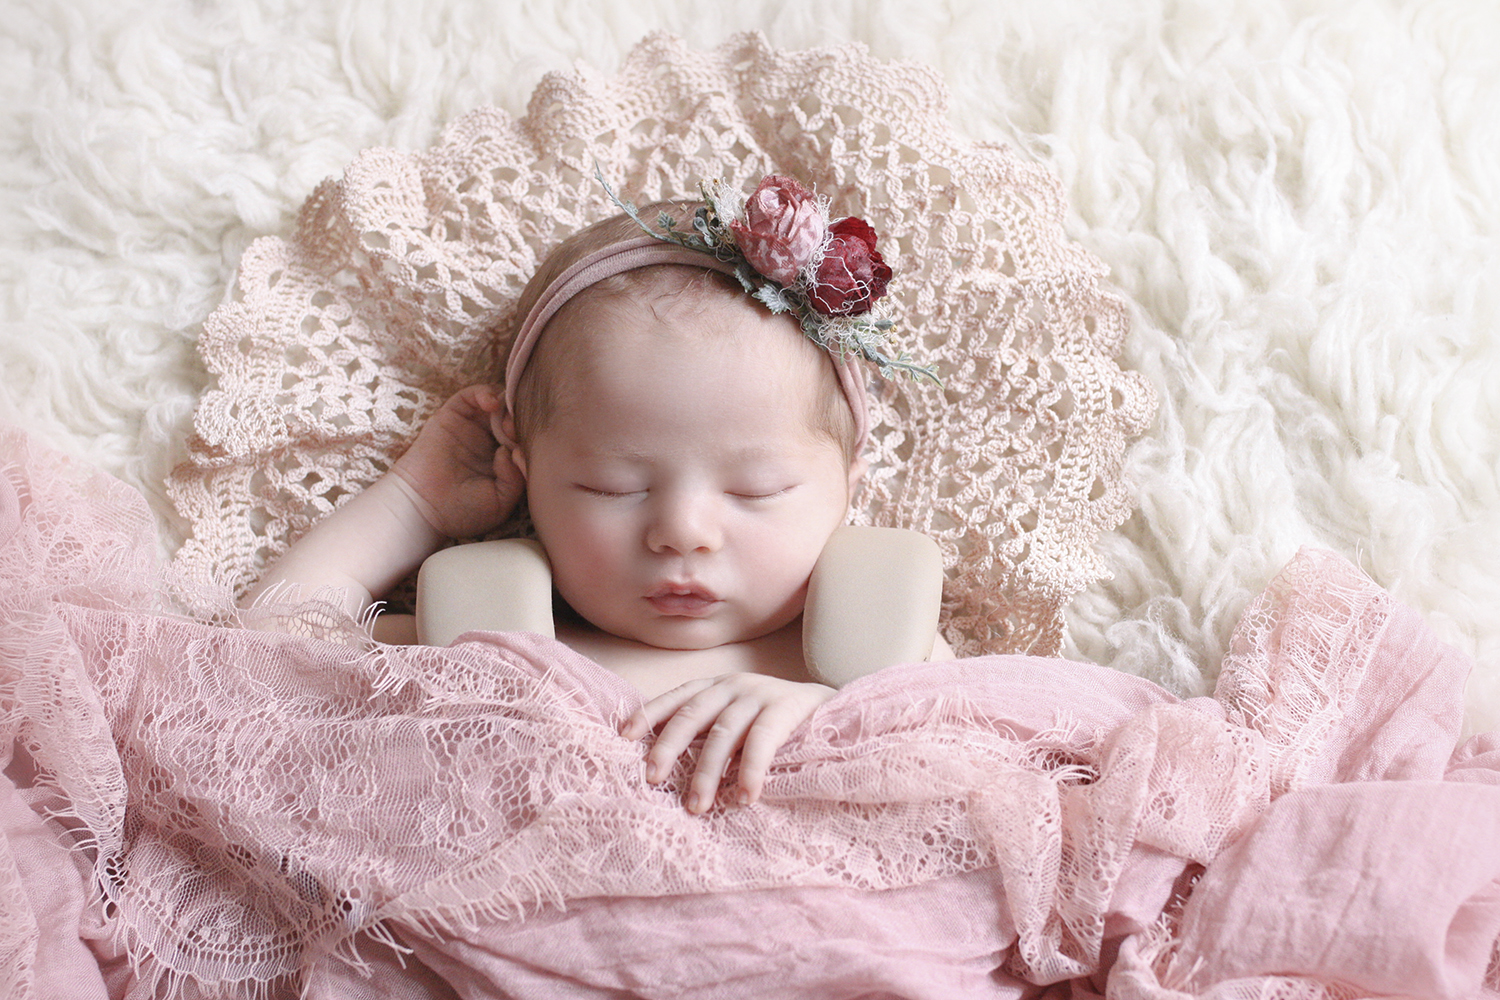 Newborn baby girl sleeping on cream fur with pink lace doily and wrap and flower tieback